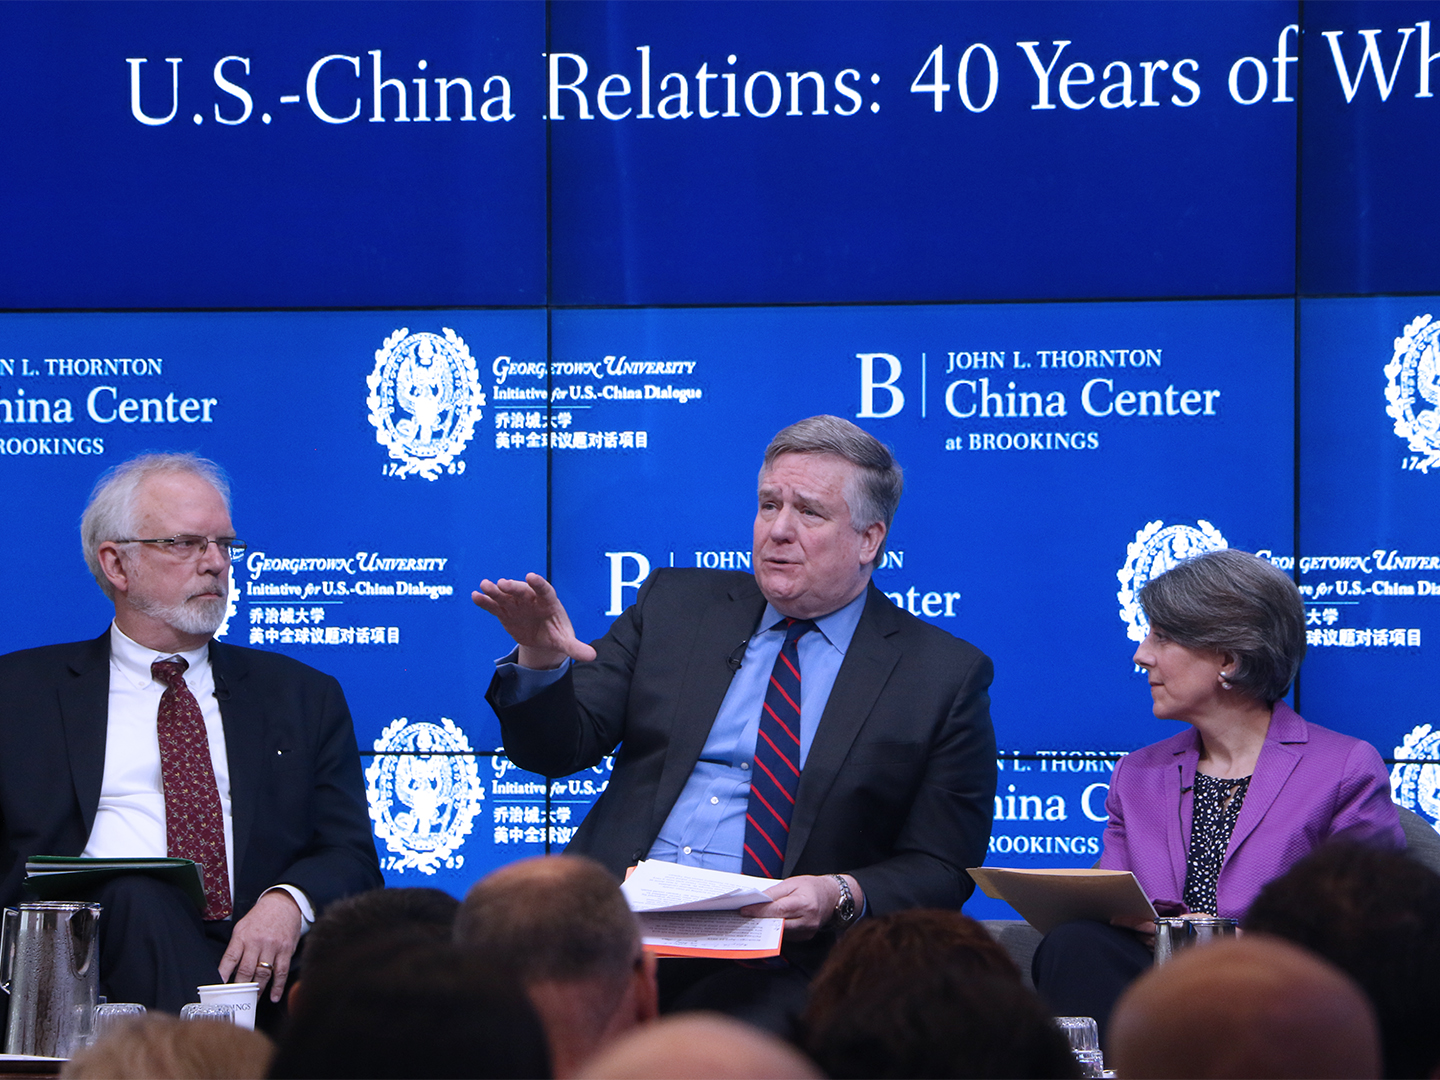 Dennis Wilder discusses working on Taiwan policy during his time in the Bush administration.